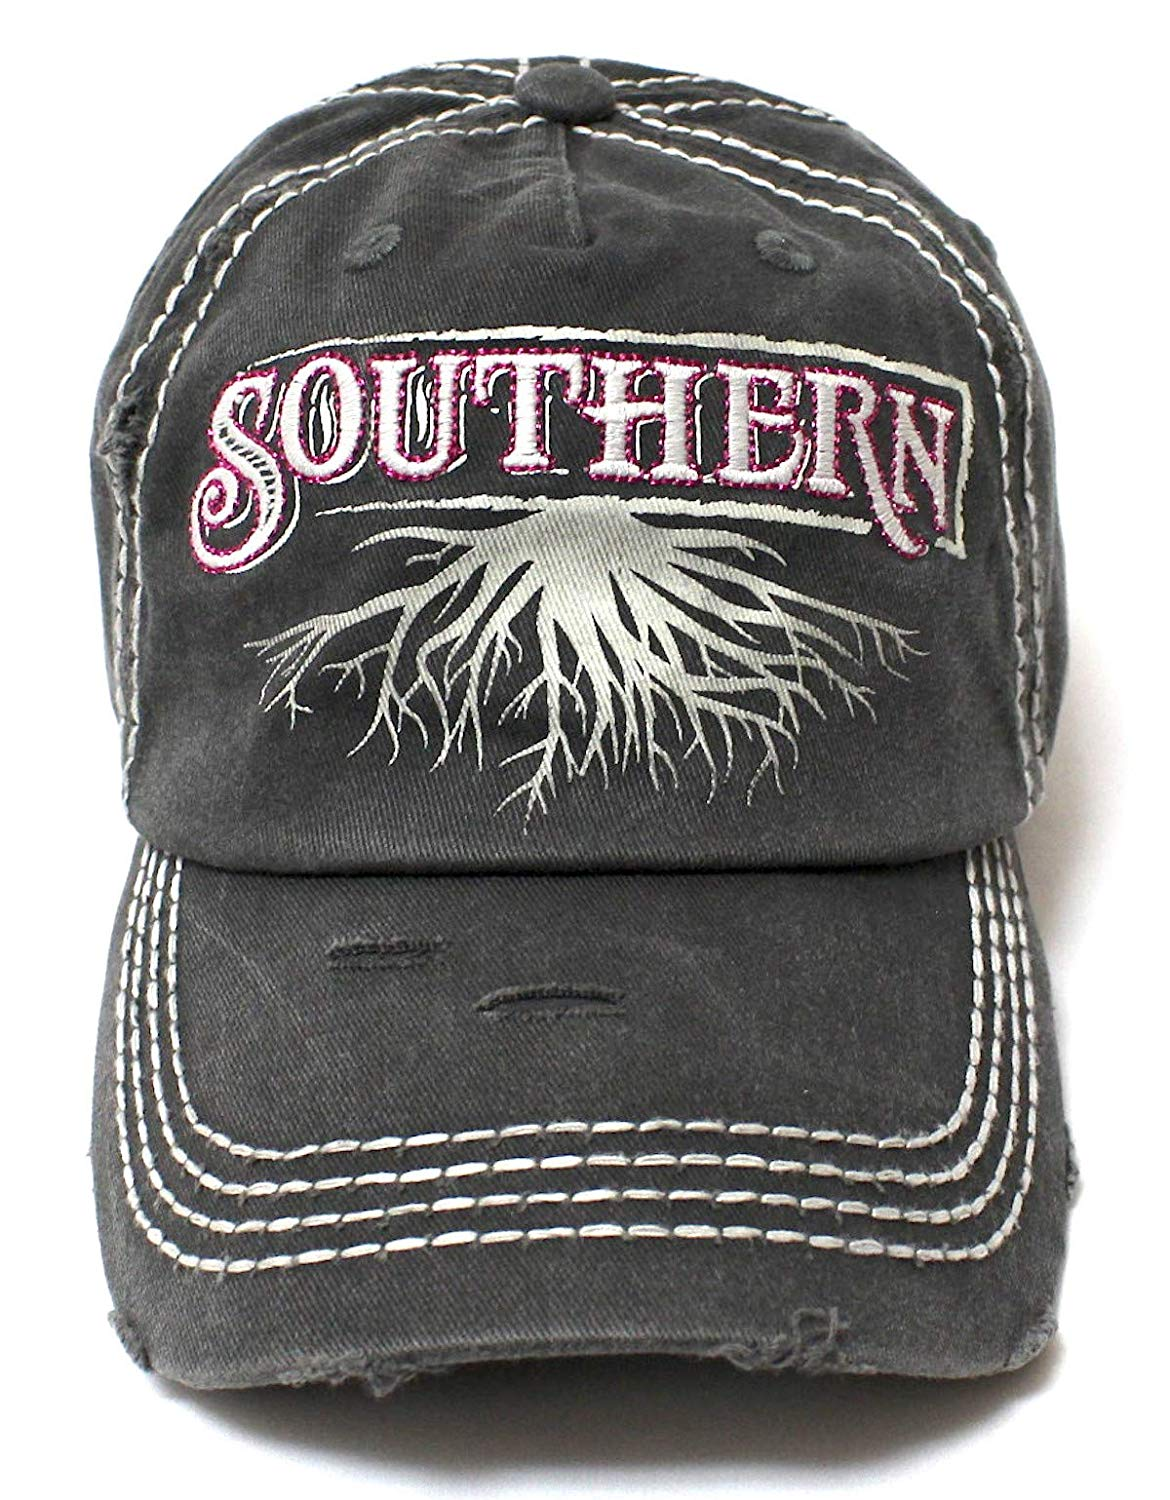 Southern Roots Sparkle Monogram Cap in Vintage Black - Caps 'N Vintage